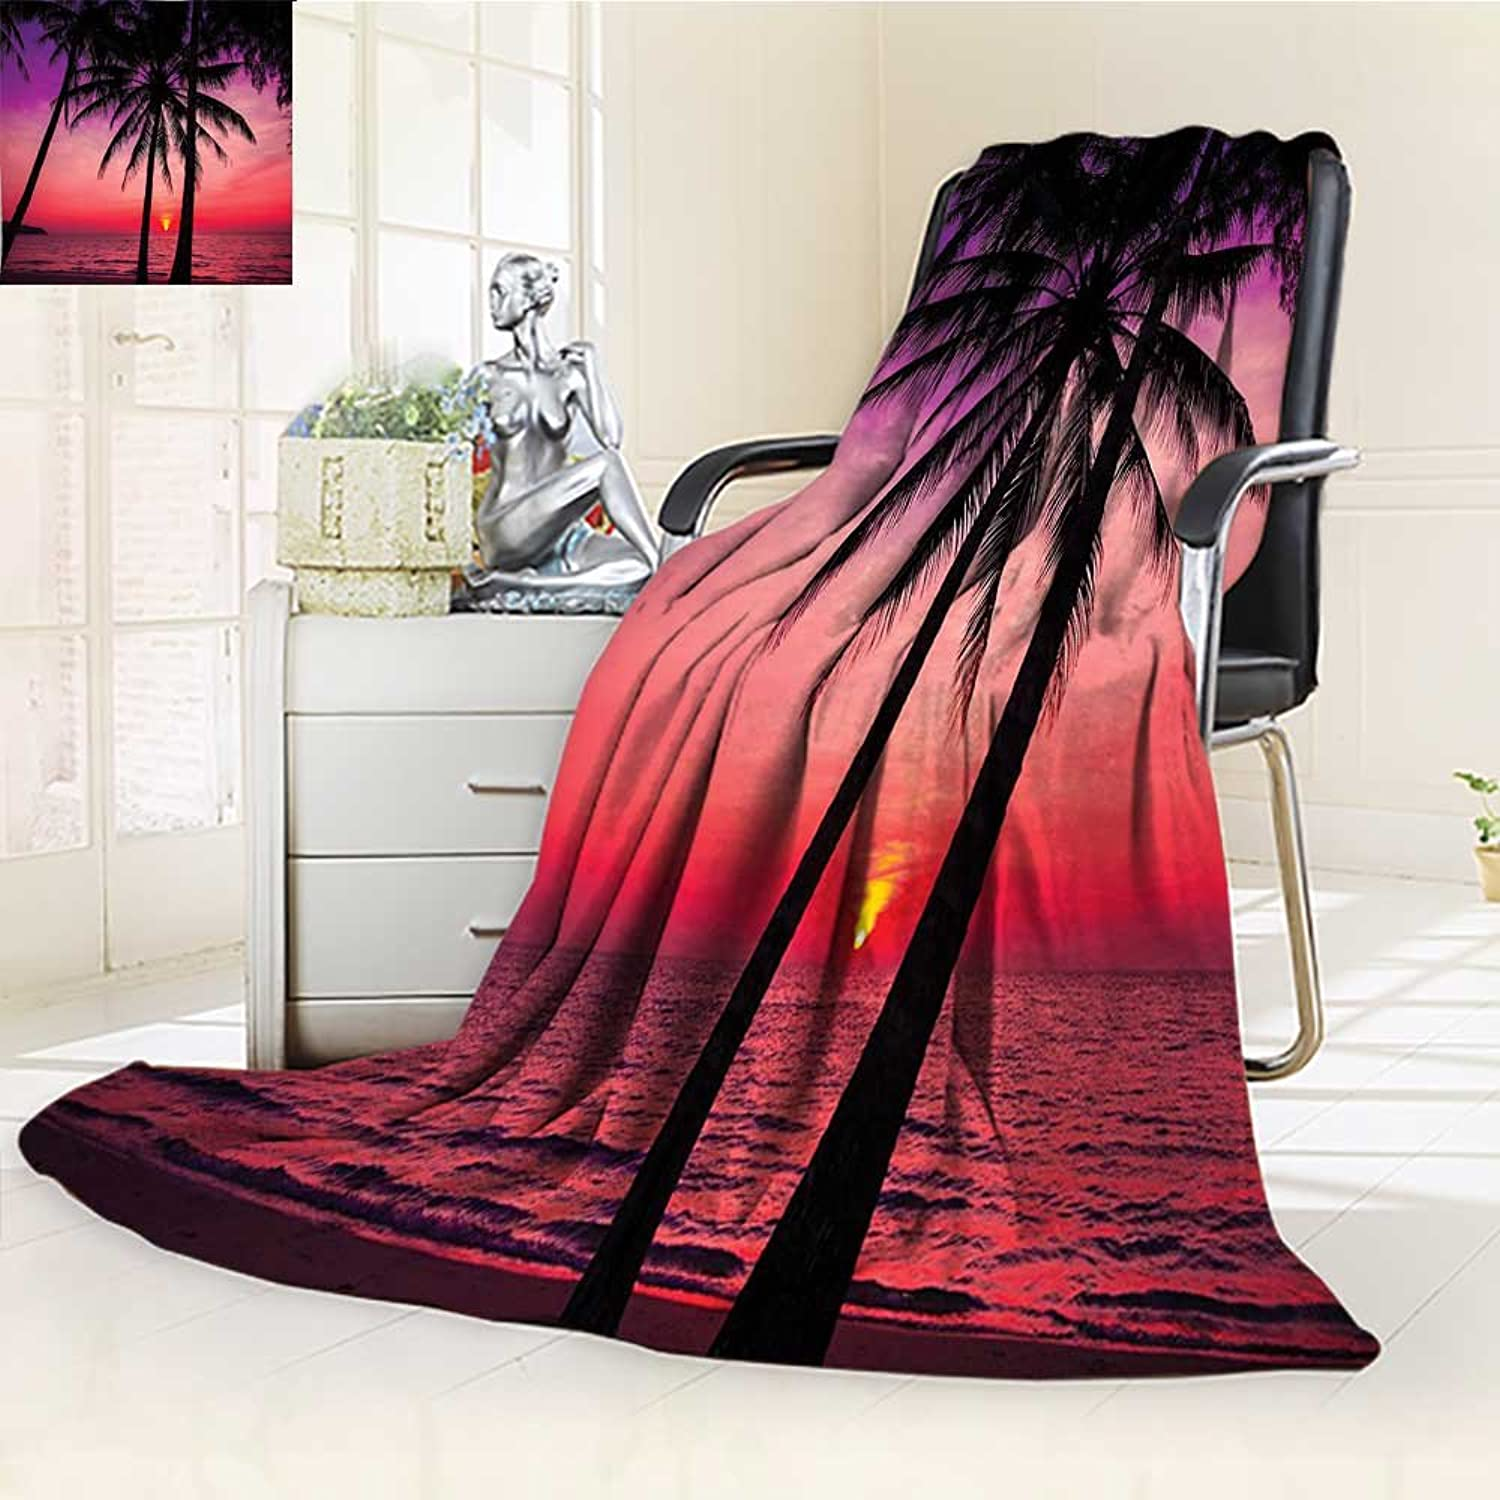 YOYI-HOME Digital Printing Duplex Printed Blanket Silhouette on Sunset Tropical Coastline Exotic Vacations Image Magenta Purple Summer Quilt Comforter  W59 x H39.5